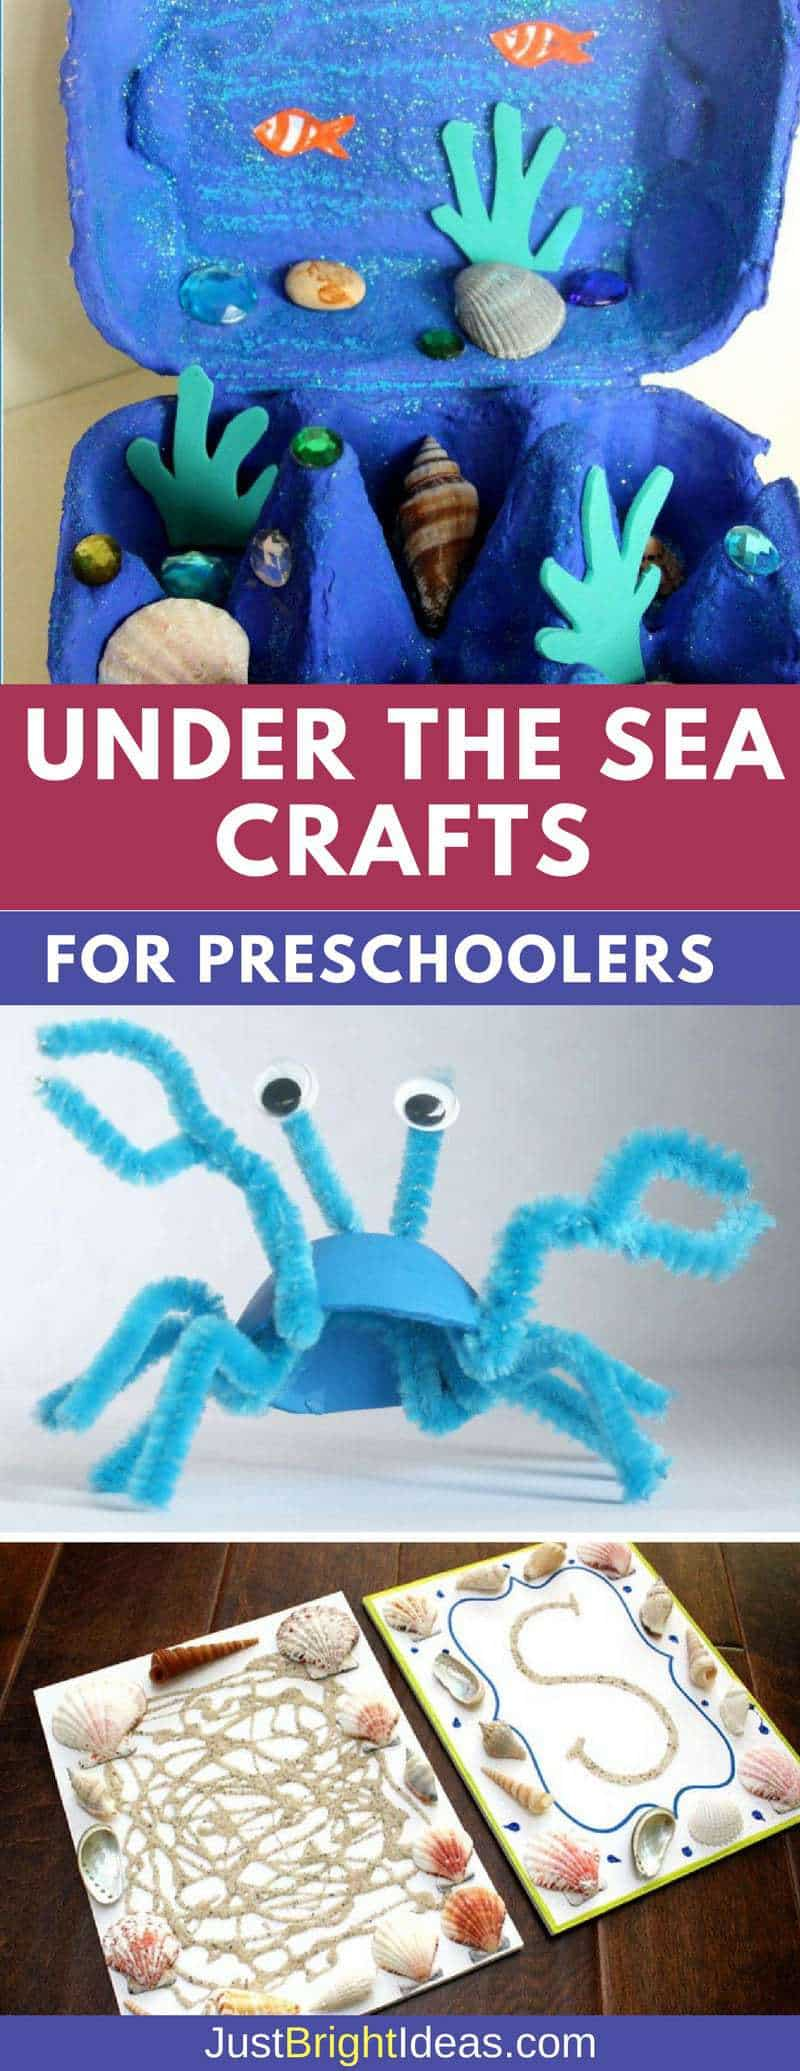 under the sea crafts for preschoolers